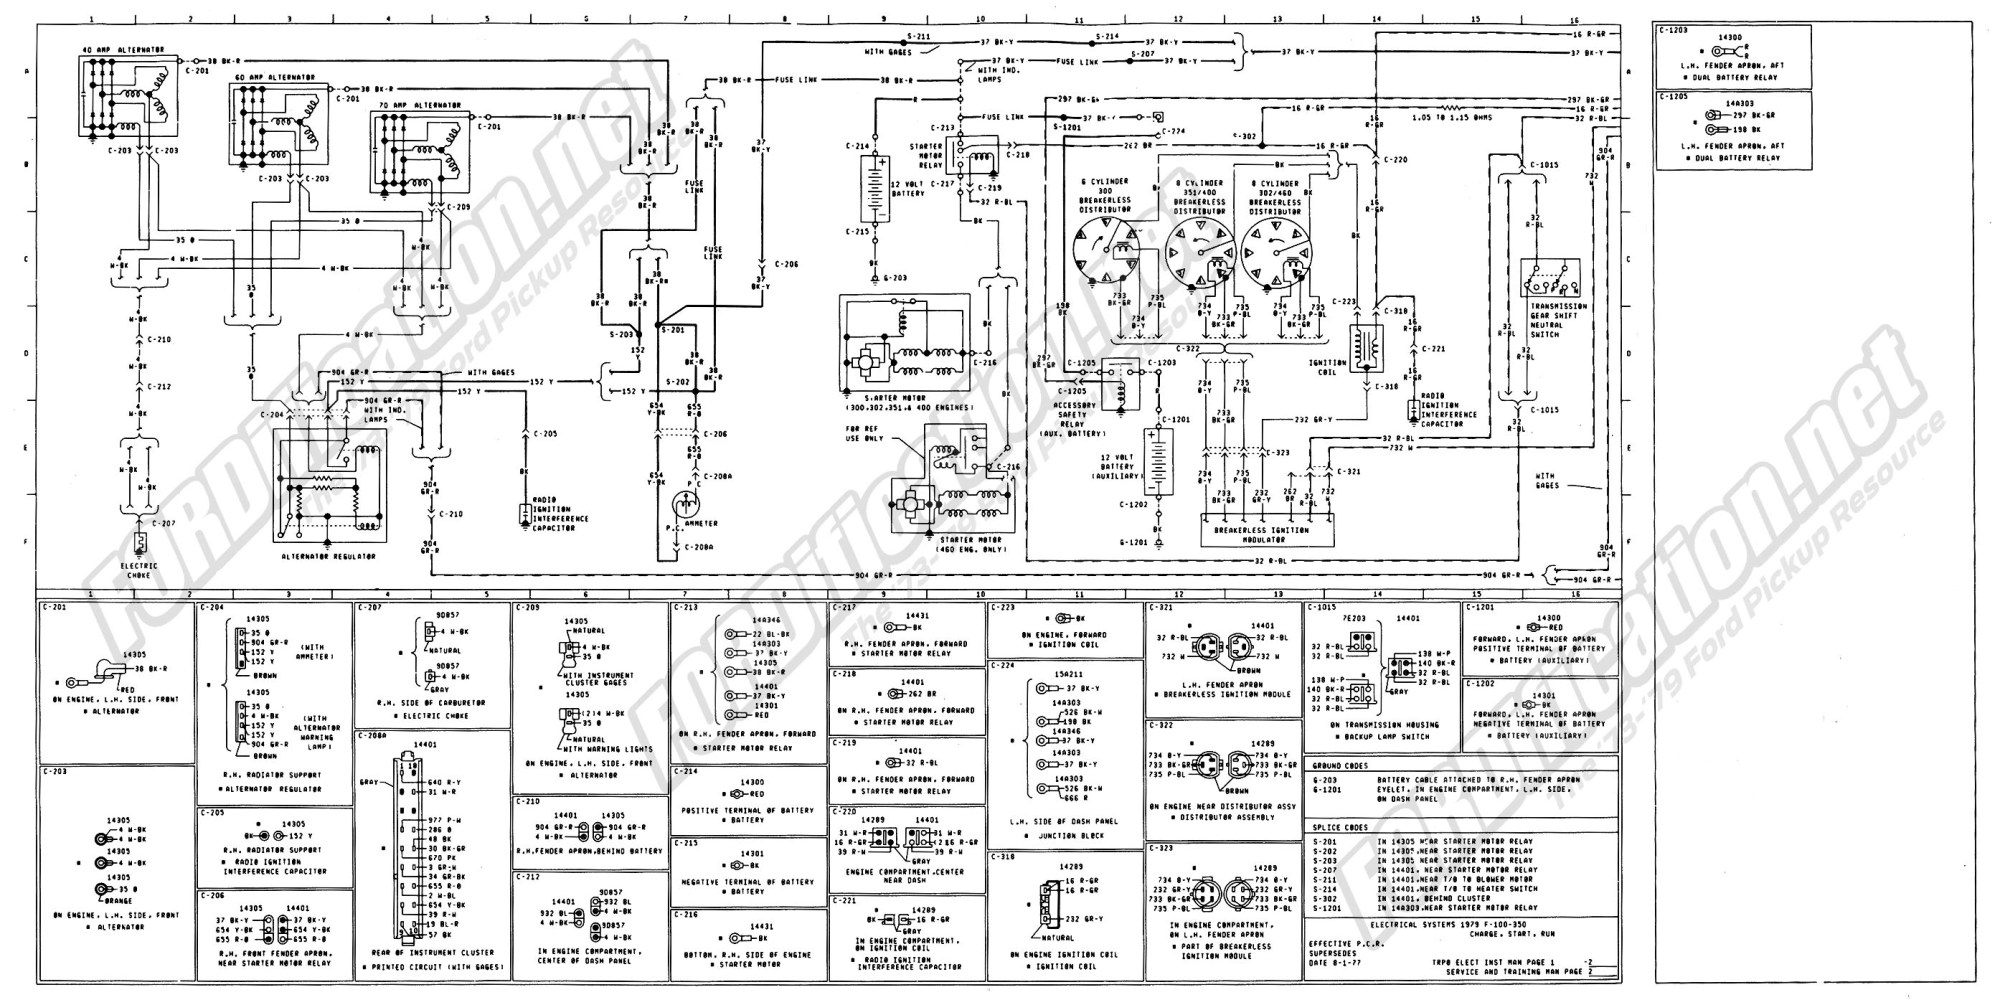 hight resolution of wiring diagram for a 2007 9200 international truck explained rh dmdelectro co 2007 international 9200i day